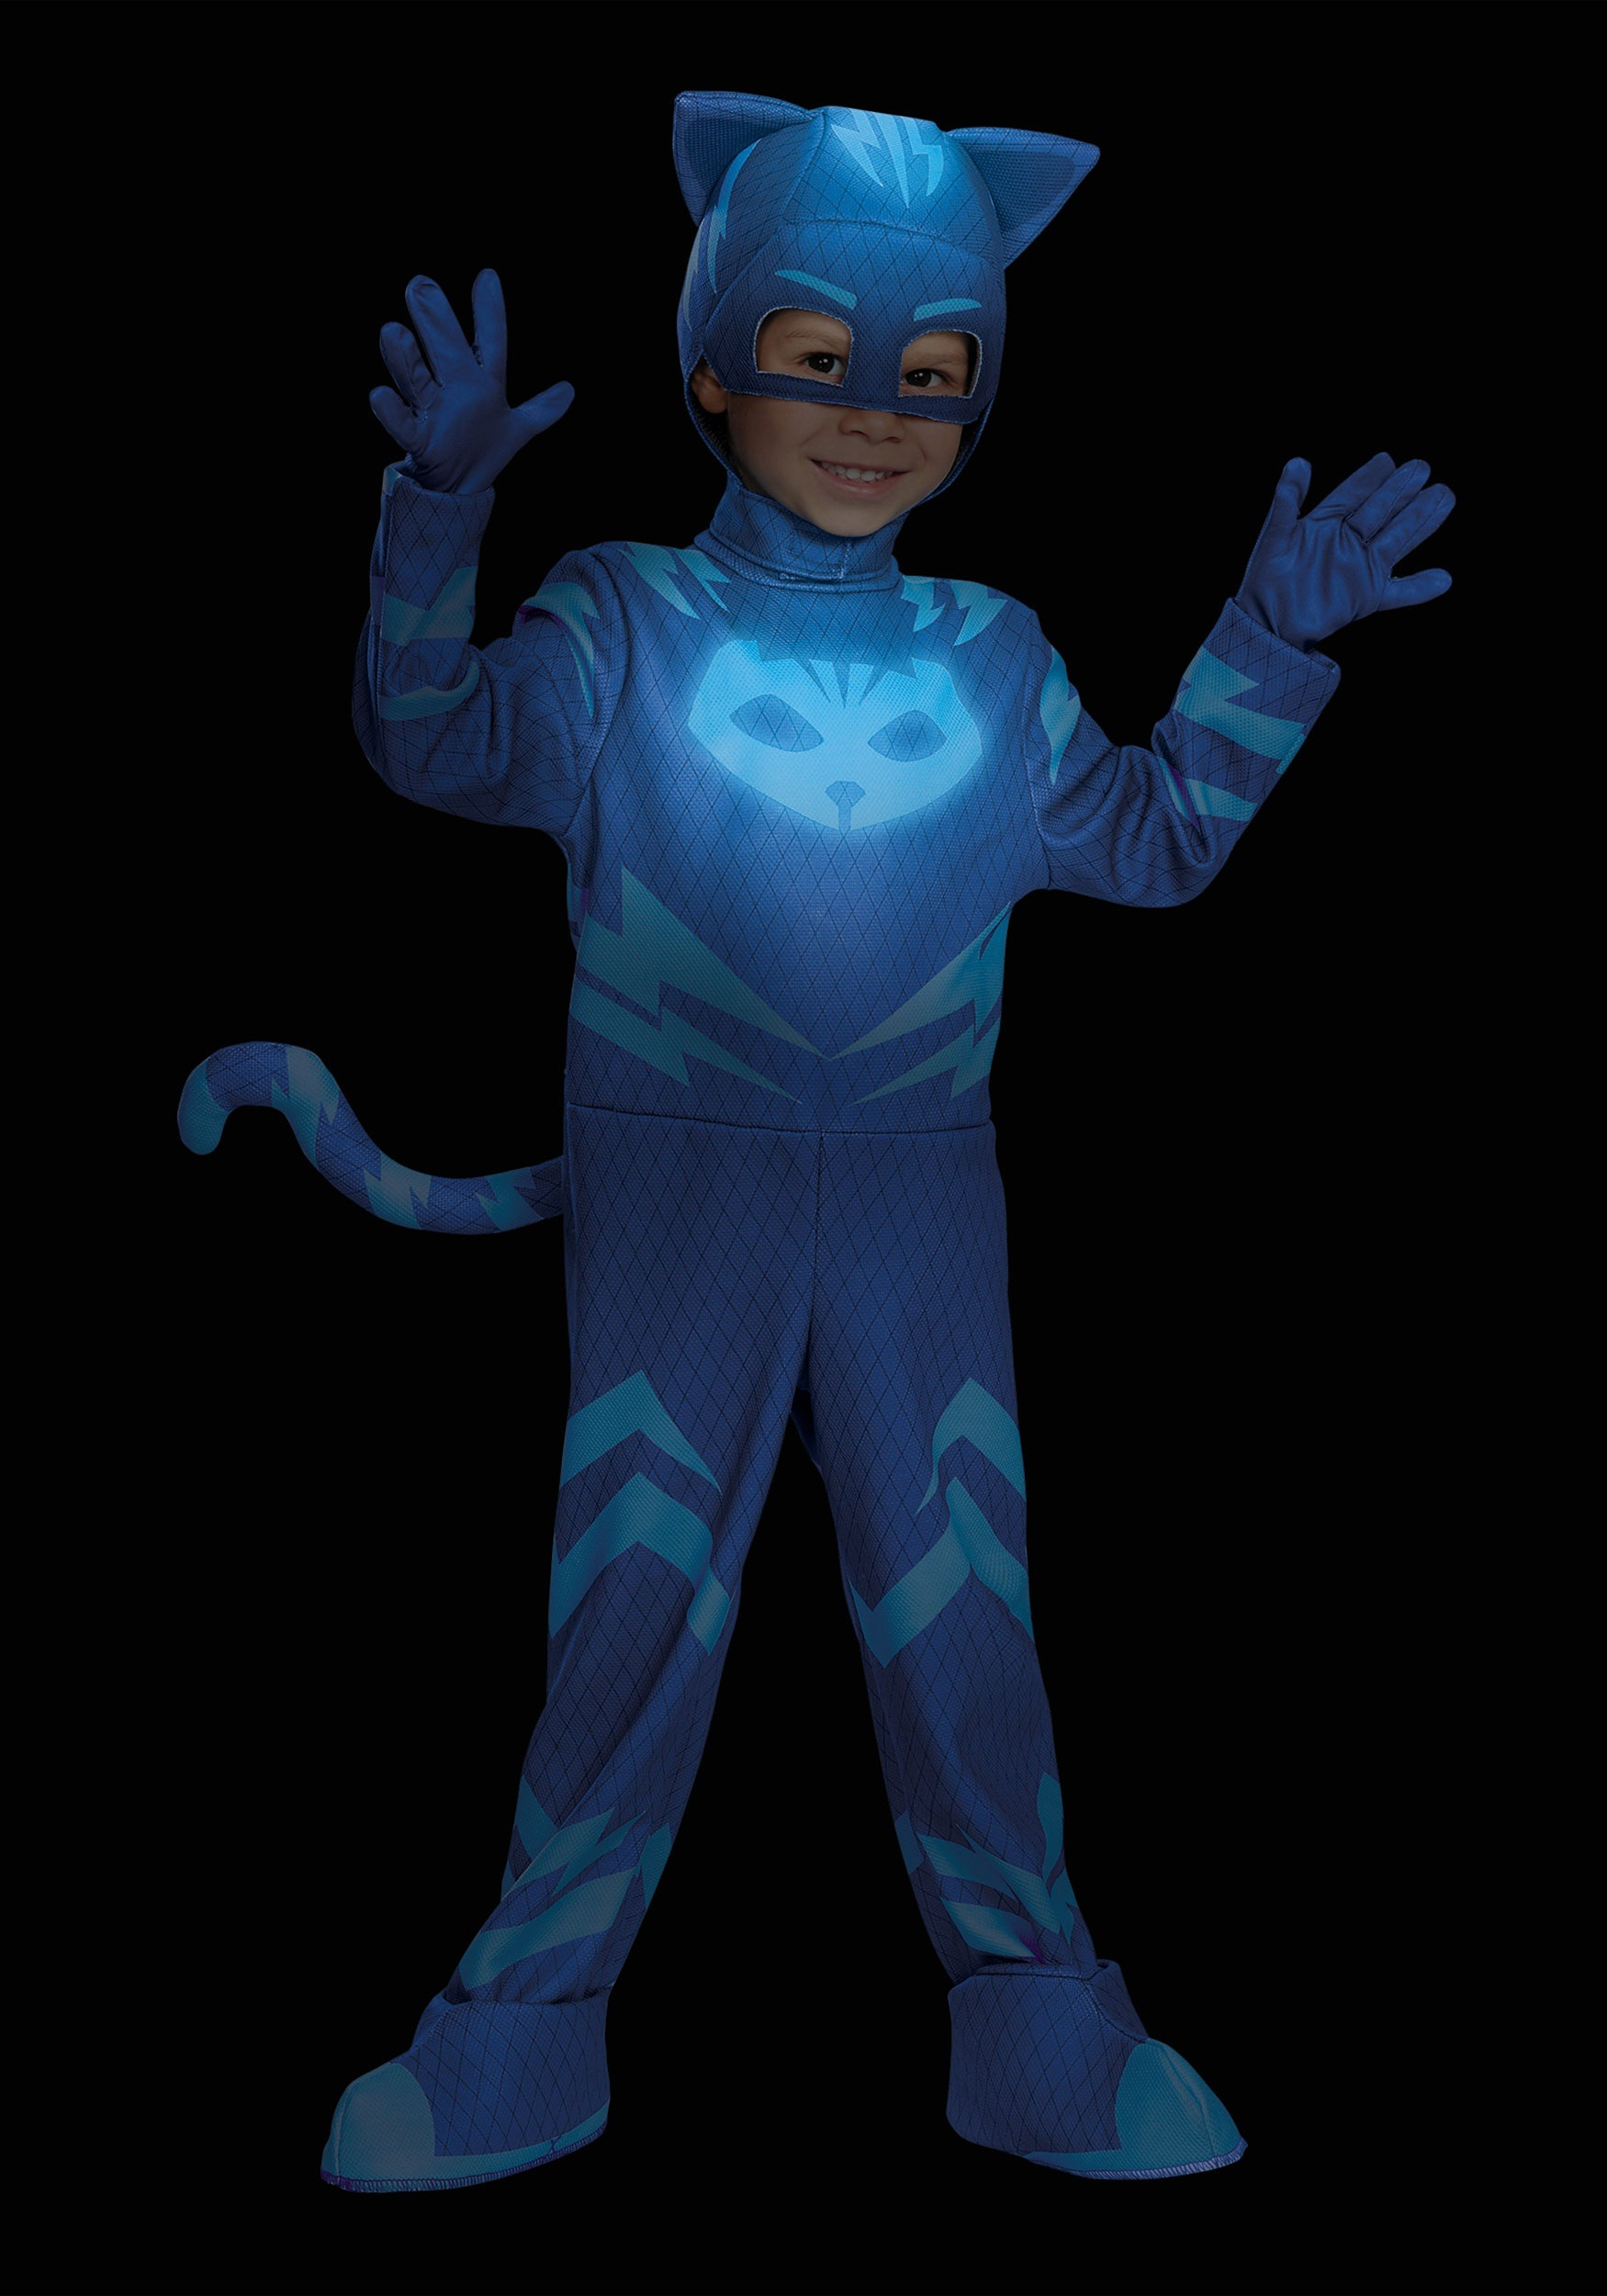 Halloween Decorations Home Made Deluxe Pj Masks Cat Boy Costume